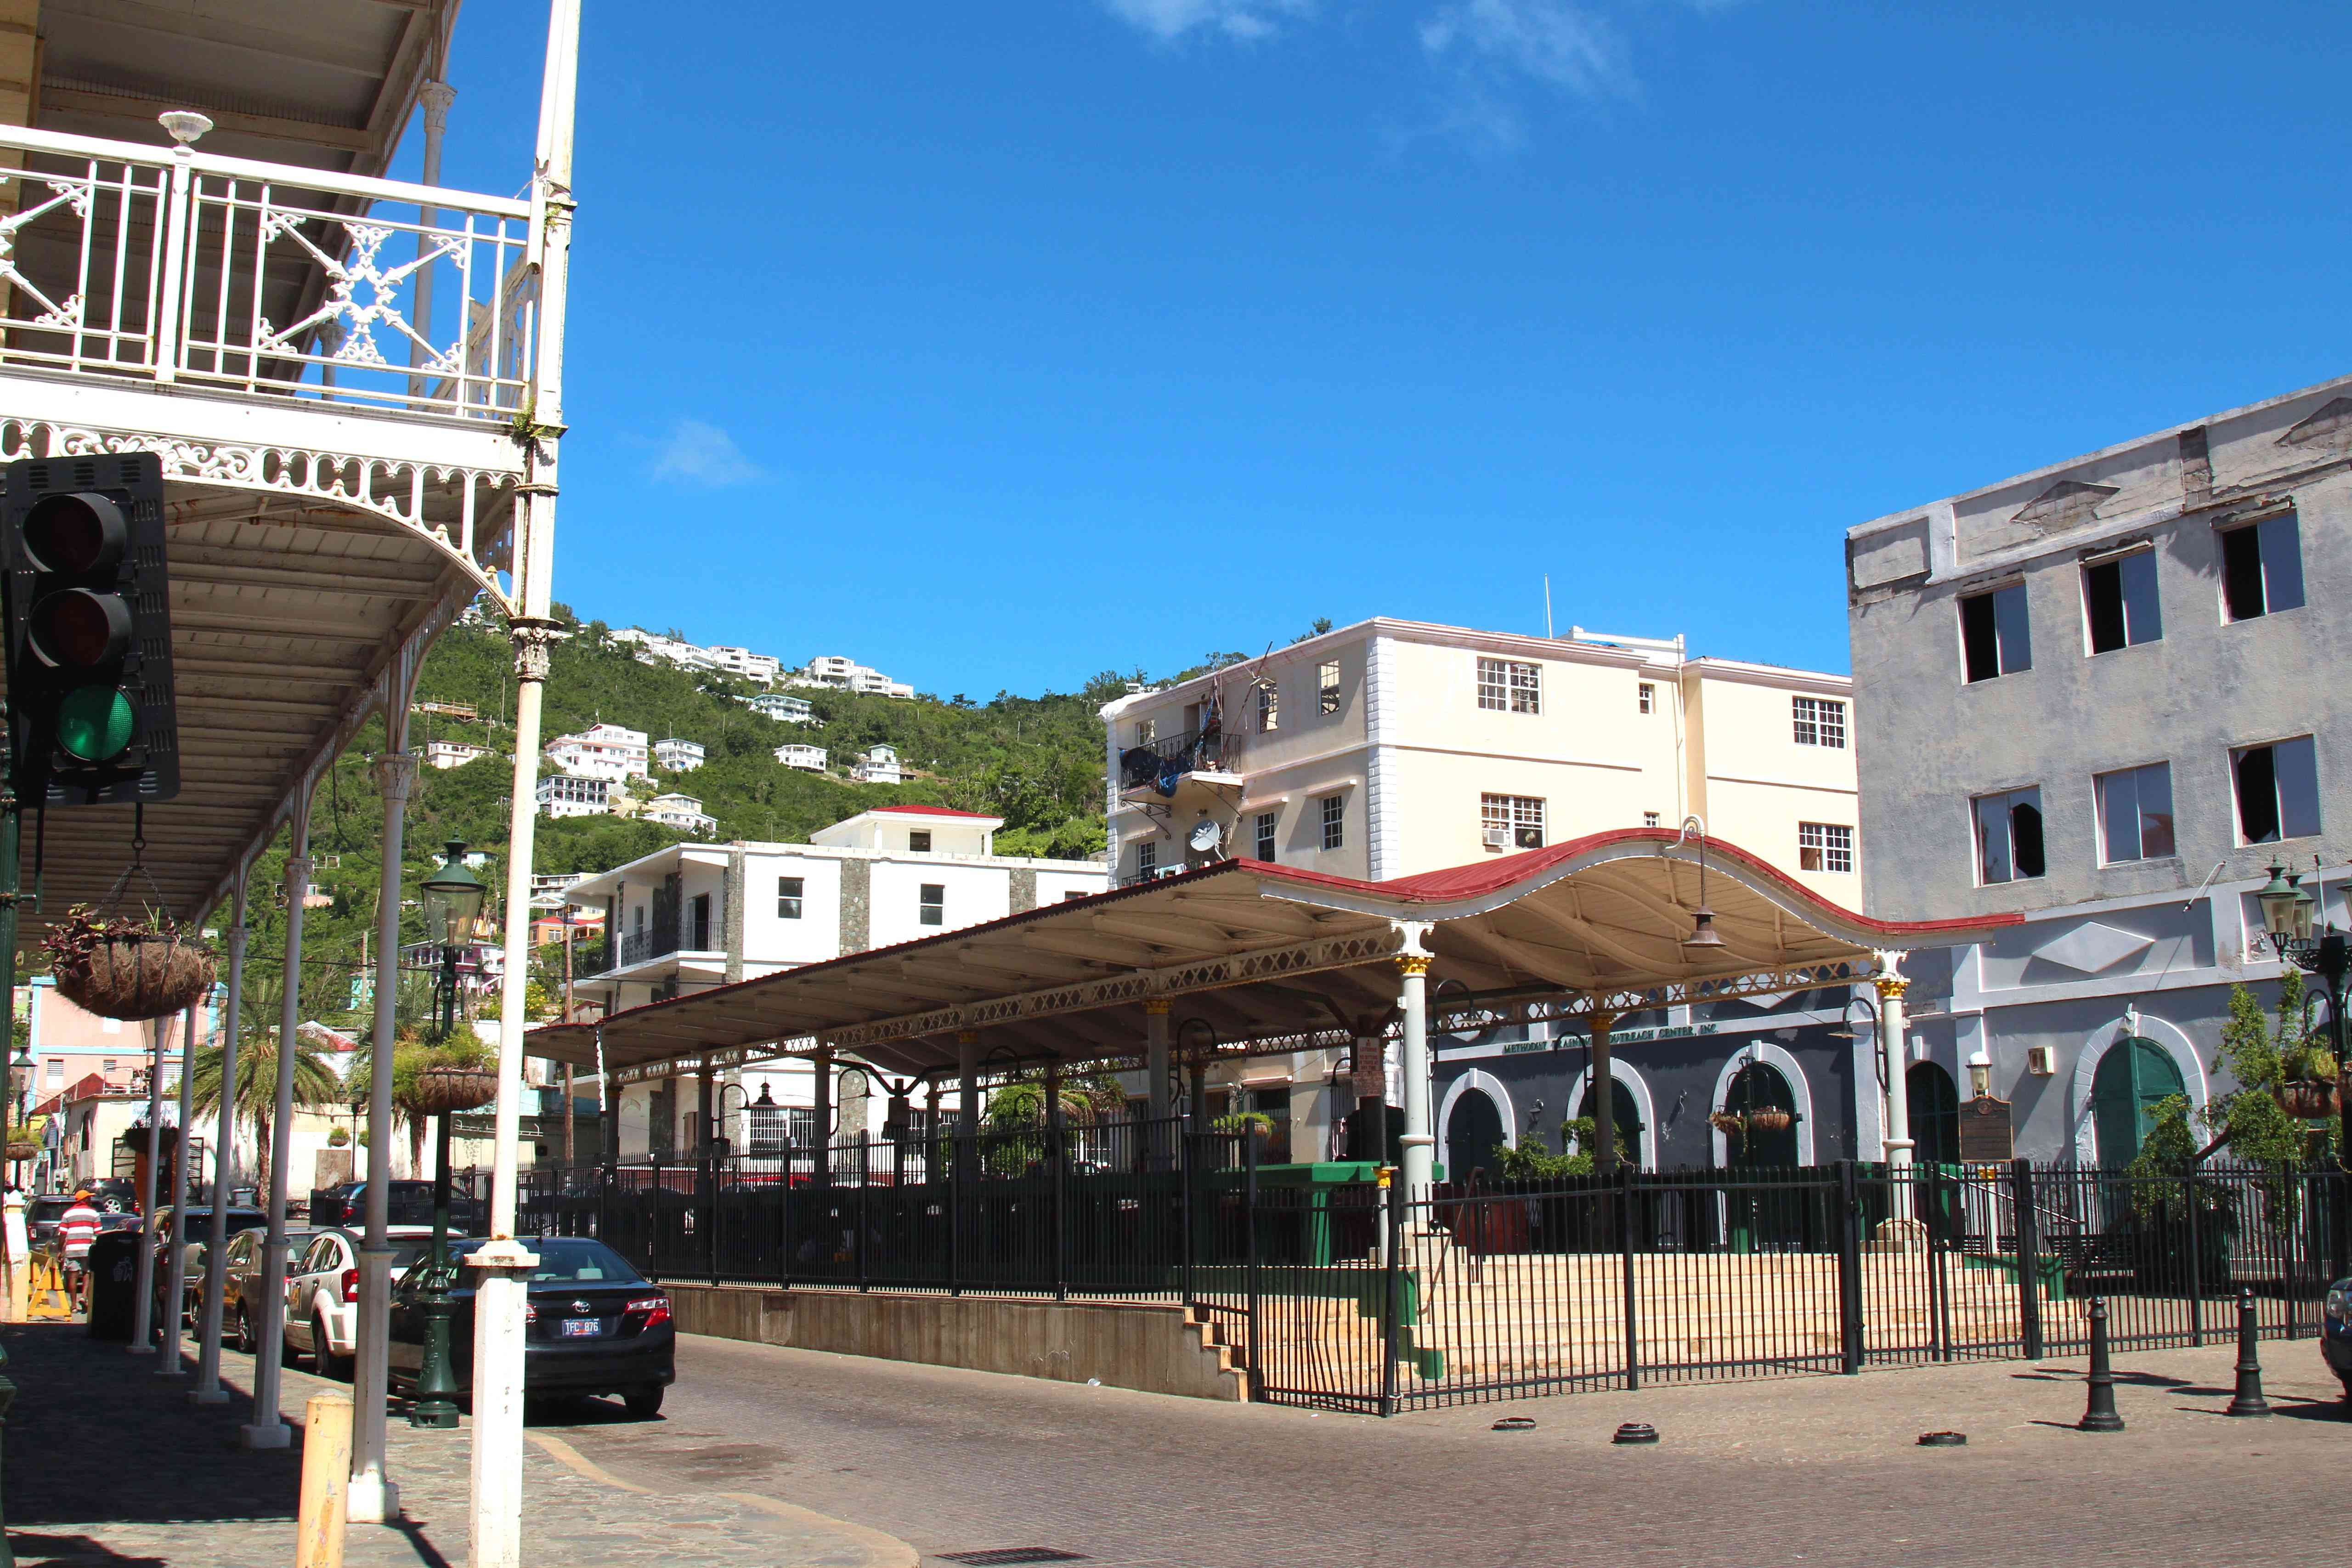 Parked cars next to a covered pavilion in St. Thomas